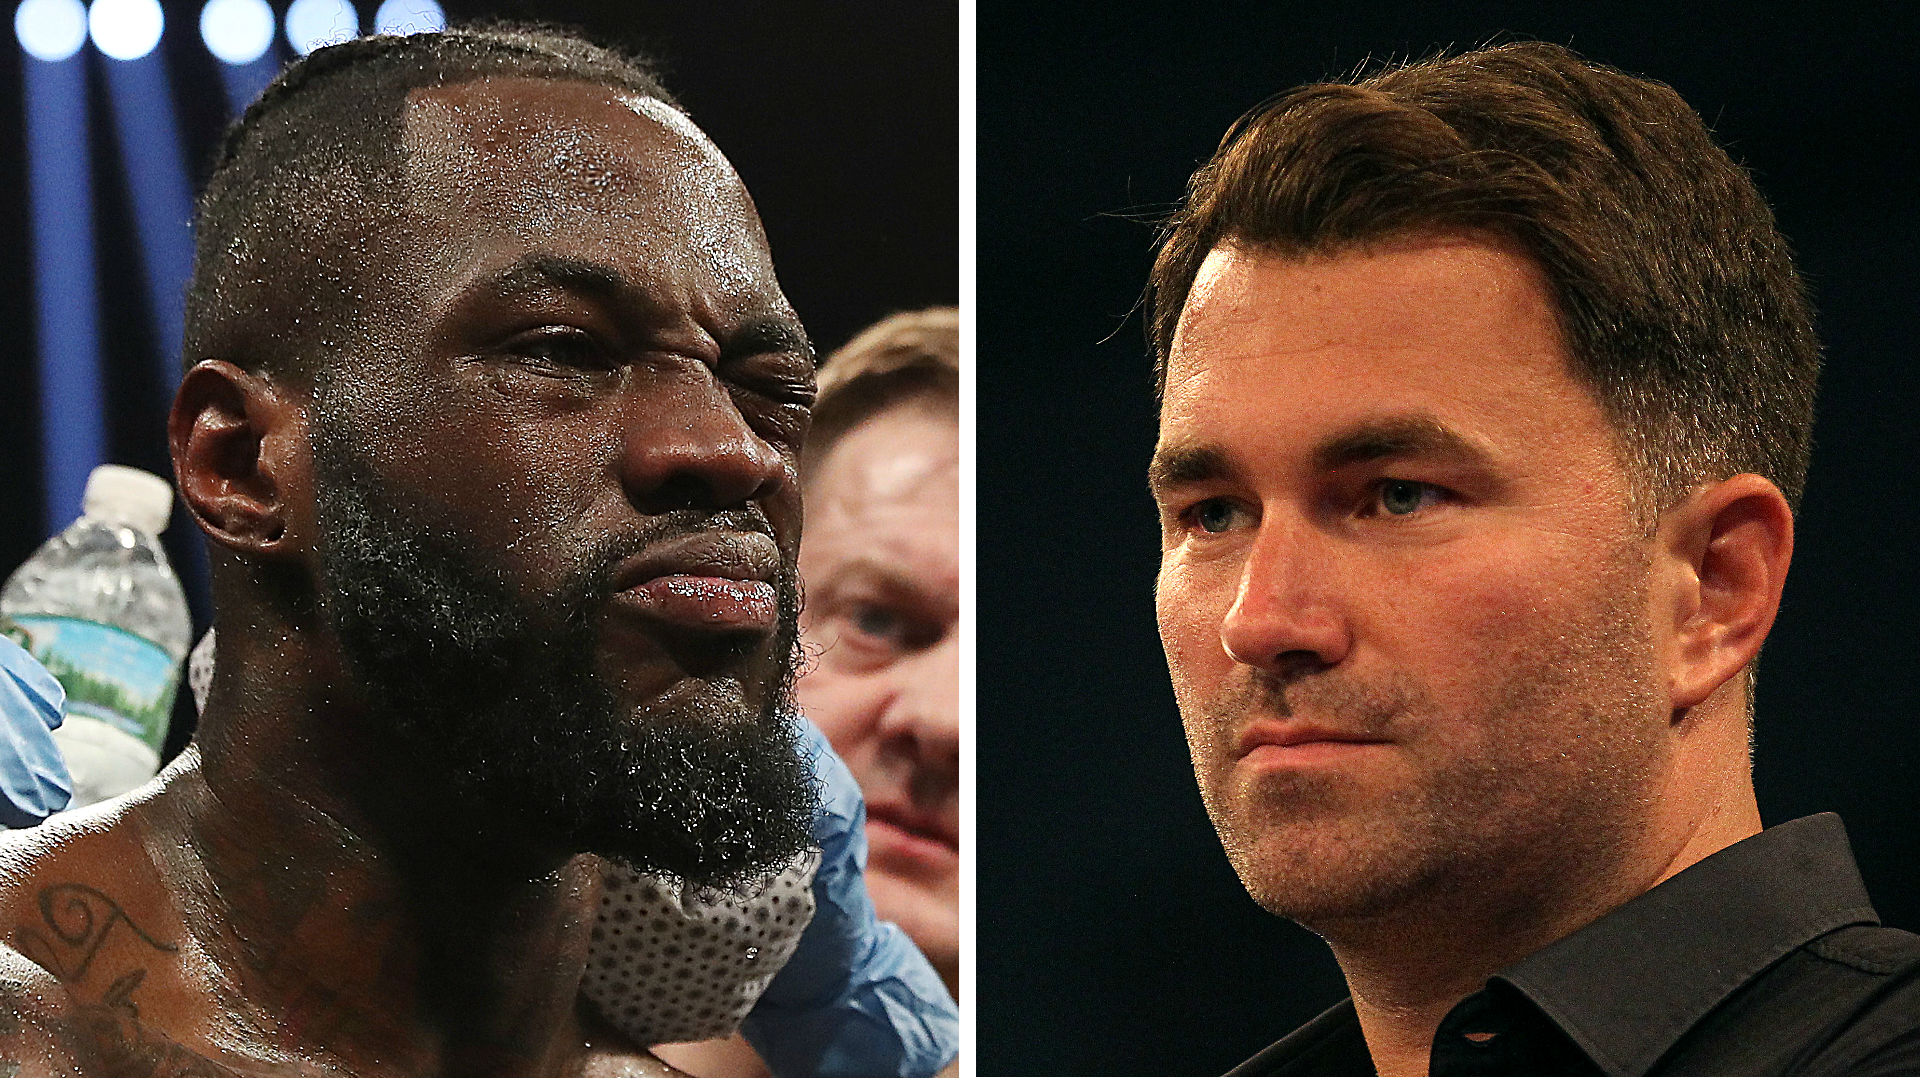 Eddie Hearn: New talks could lead to two fights between Anthony Joshua, Deontay Wilder